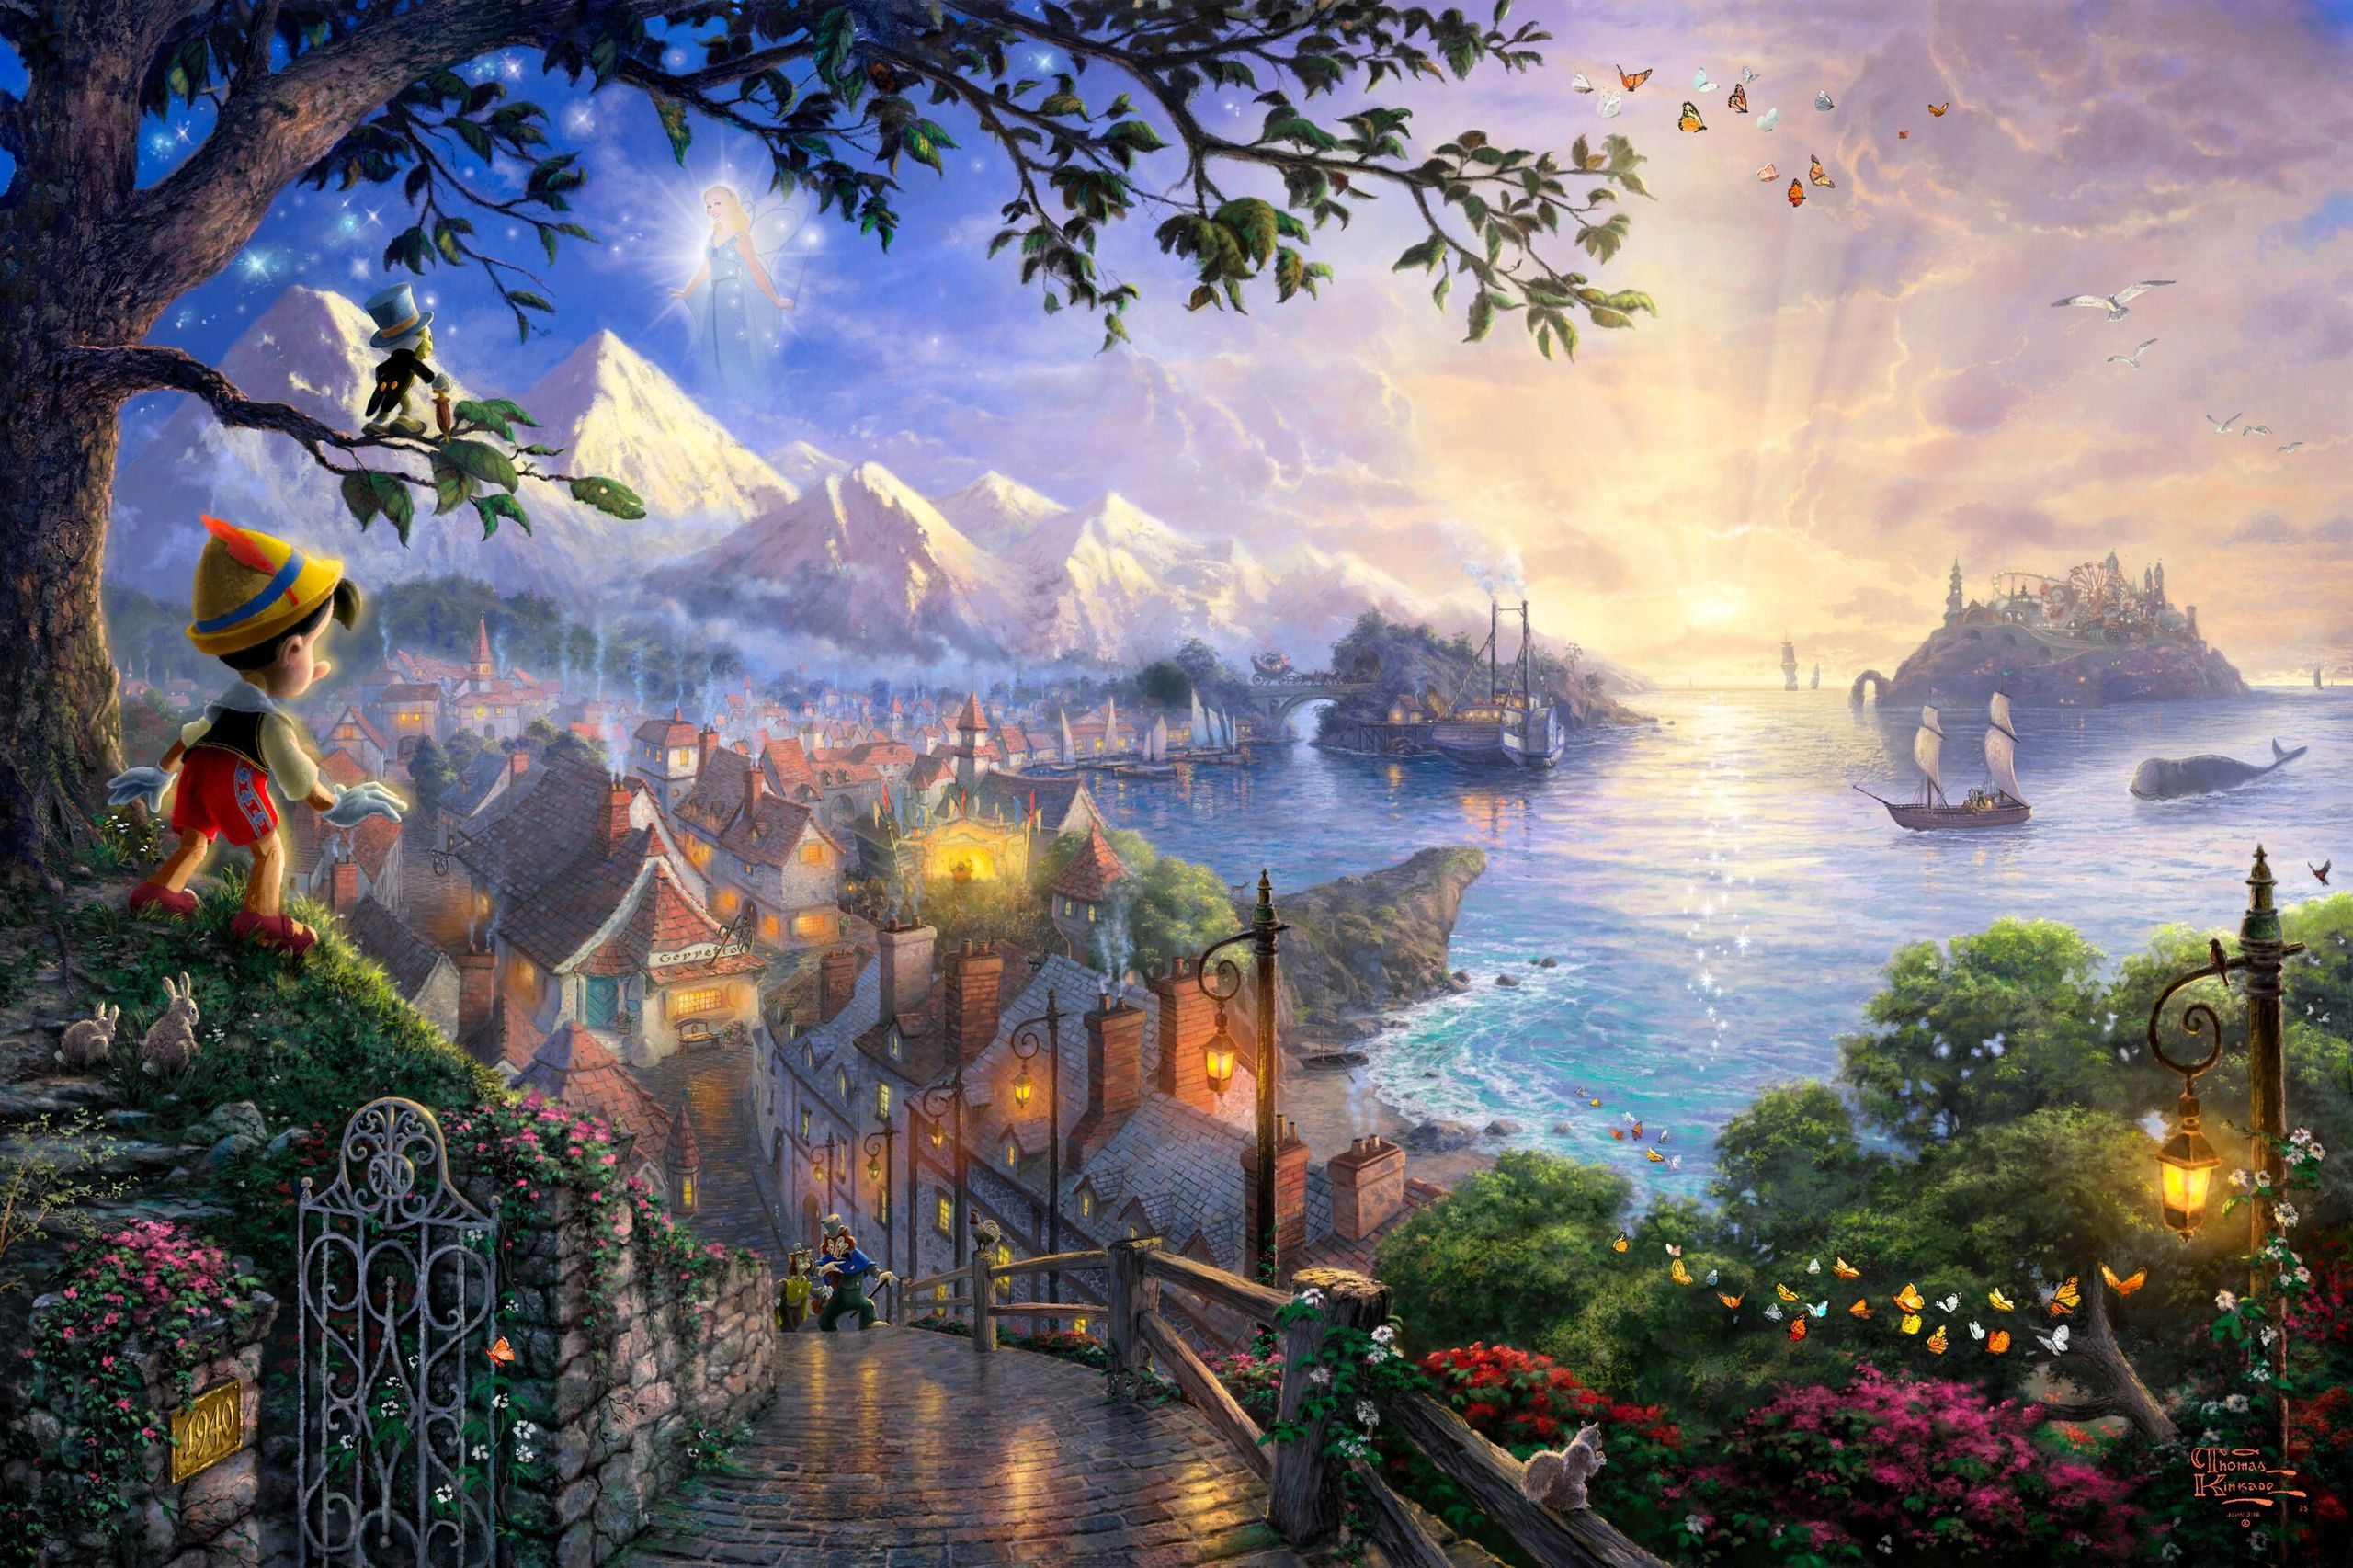 personnages de Walt Disney Thomas Kinkade's Disney Paintings ...